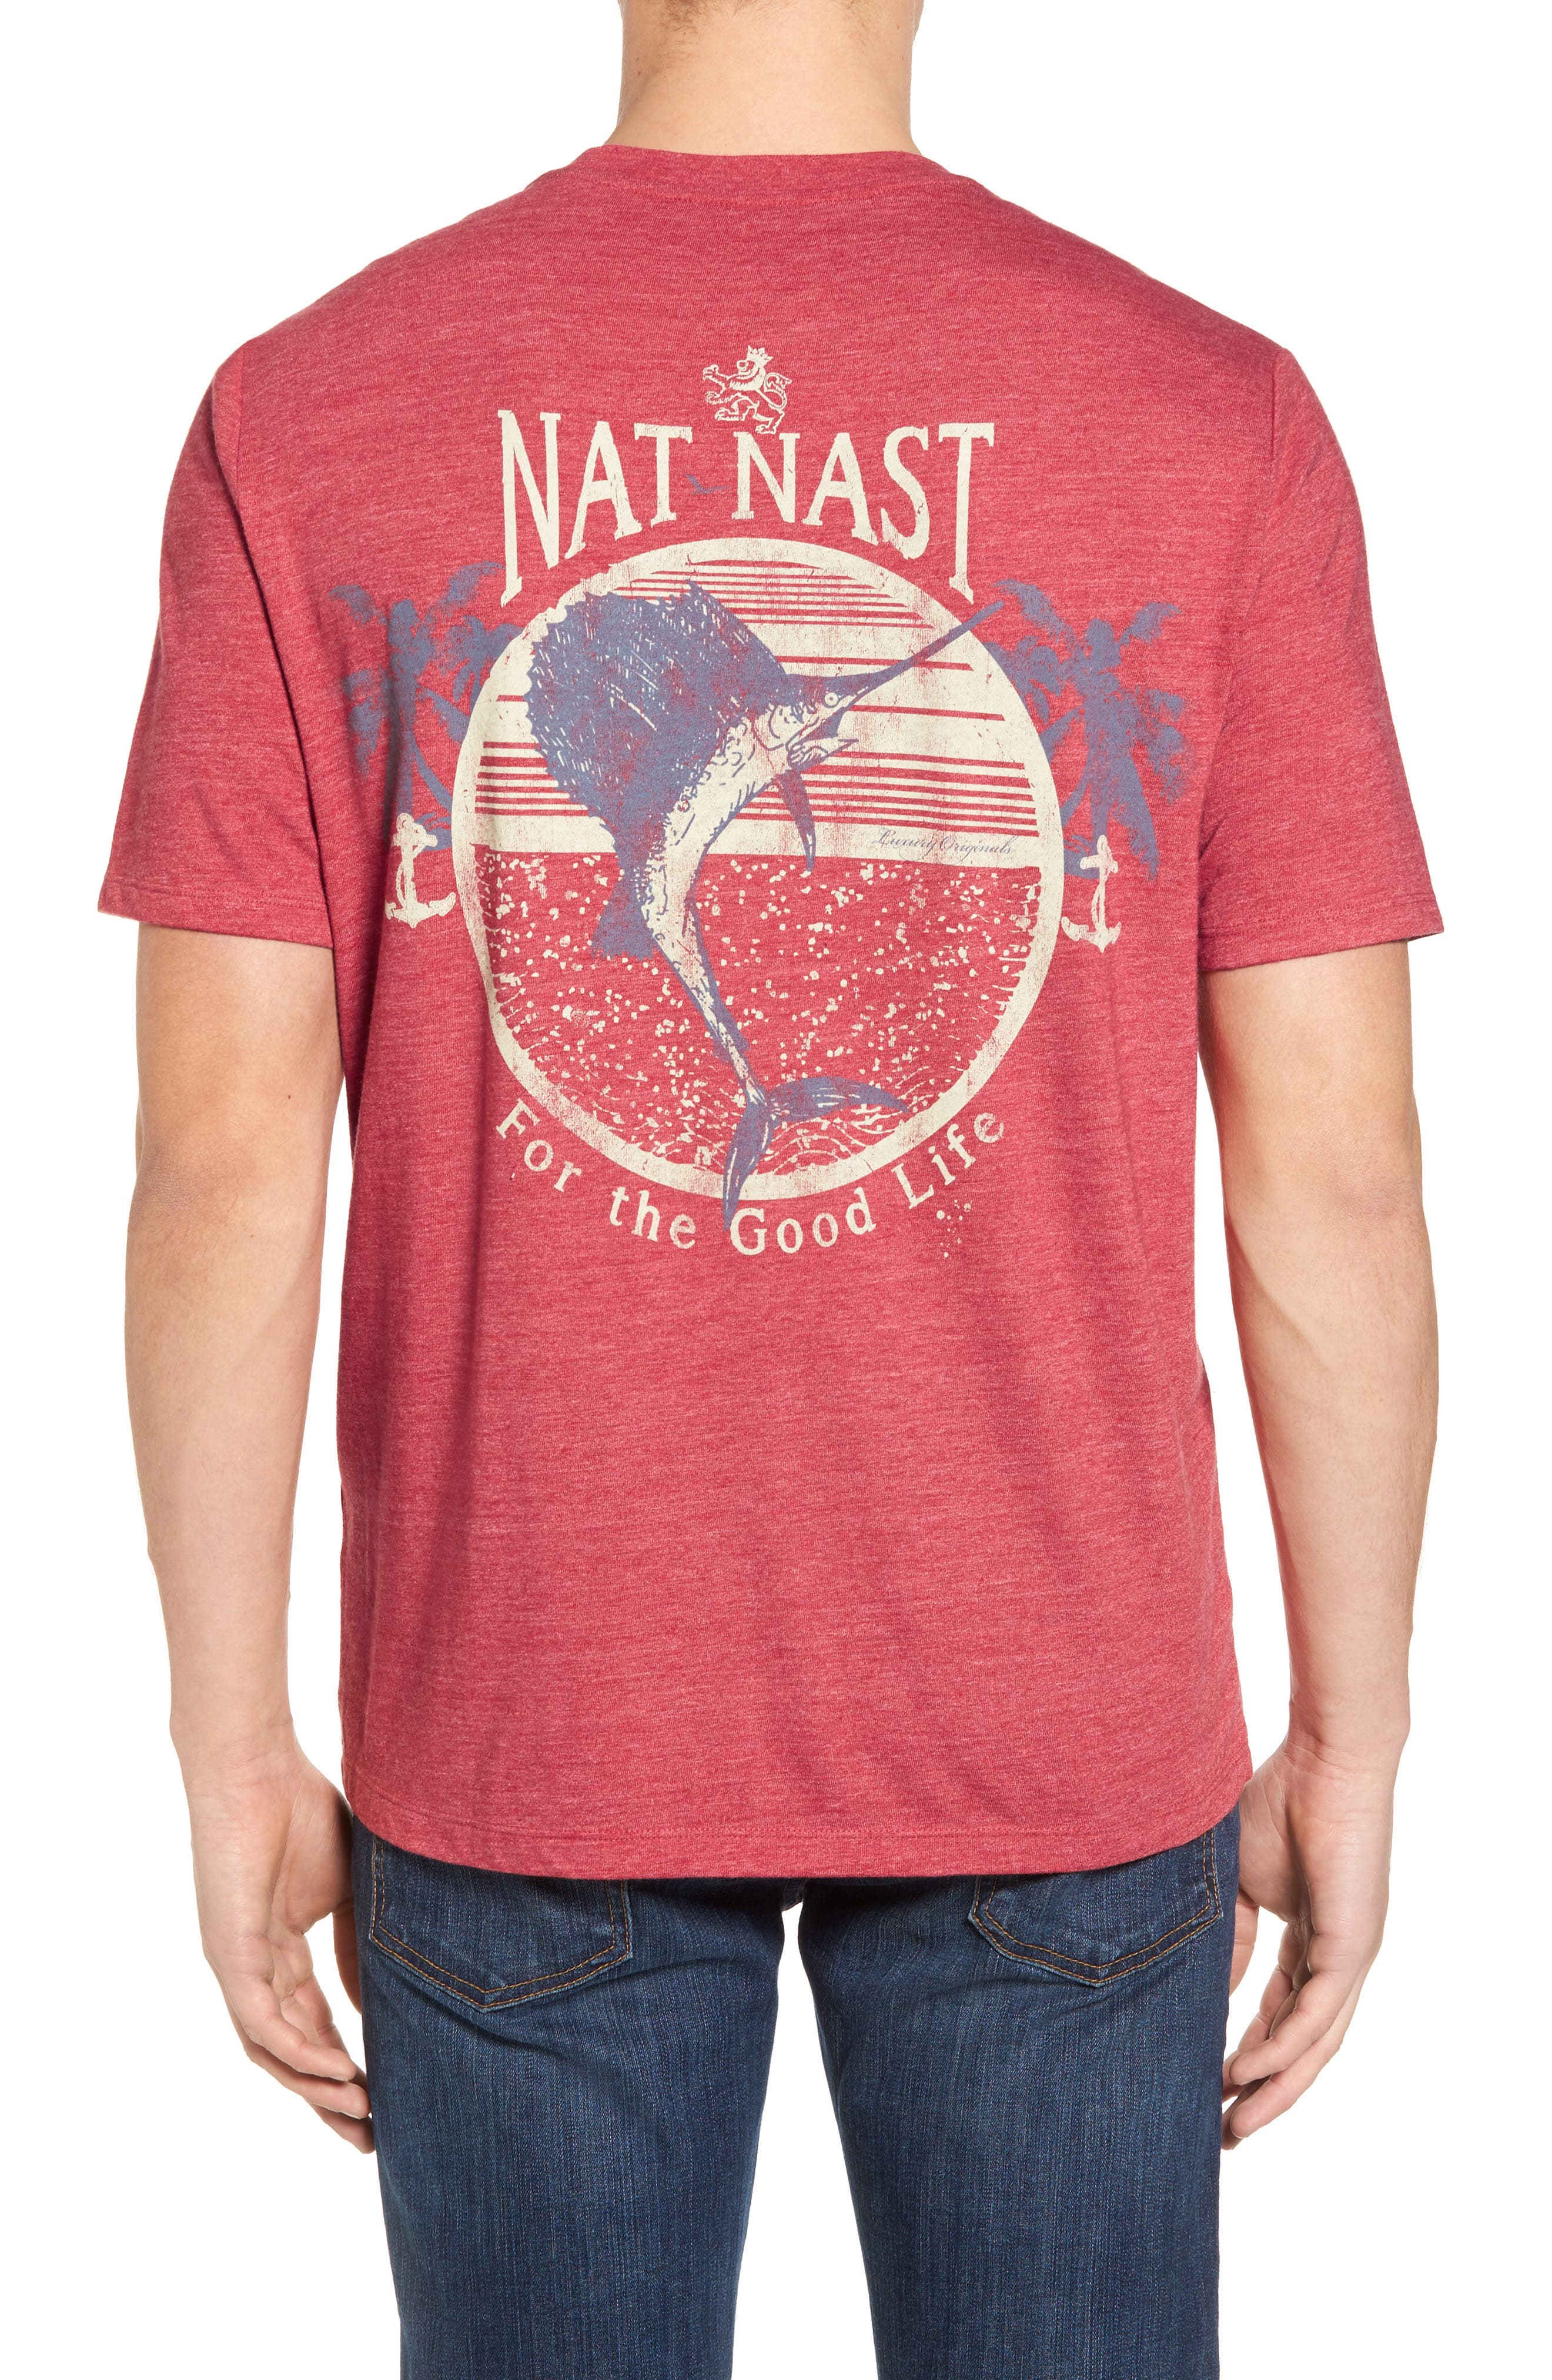 Alternate Image 2  - Nat Nast For the Good Life Graphic T-Shirt